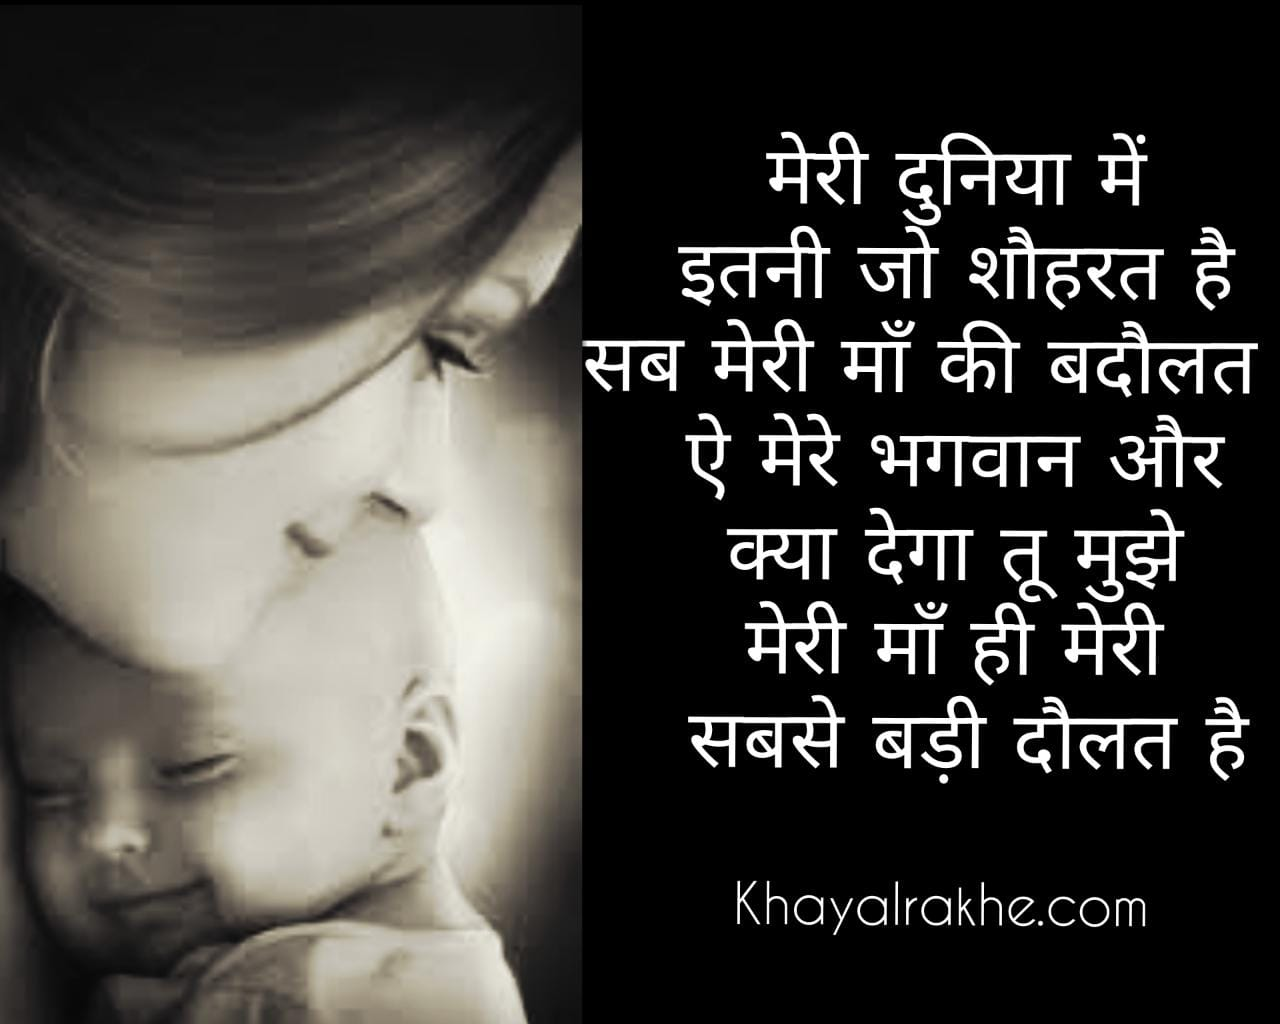 Shayari Image for Mother in Hindi-Status